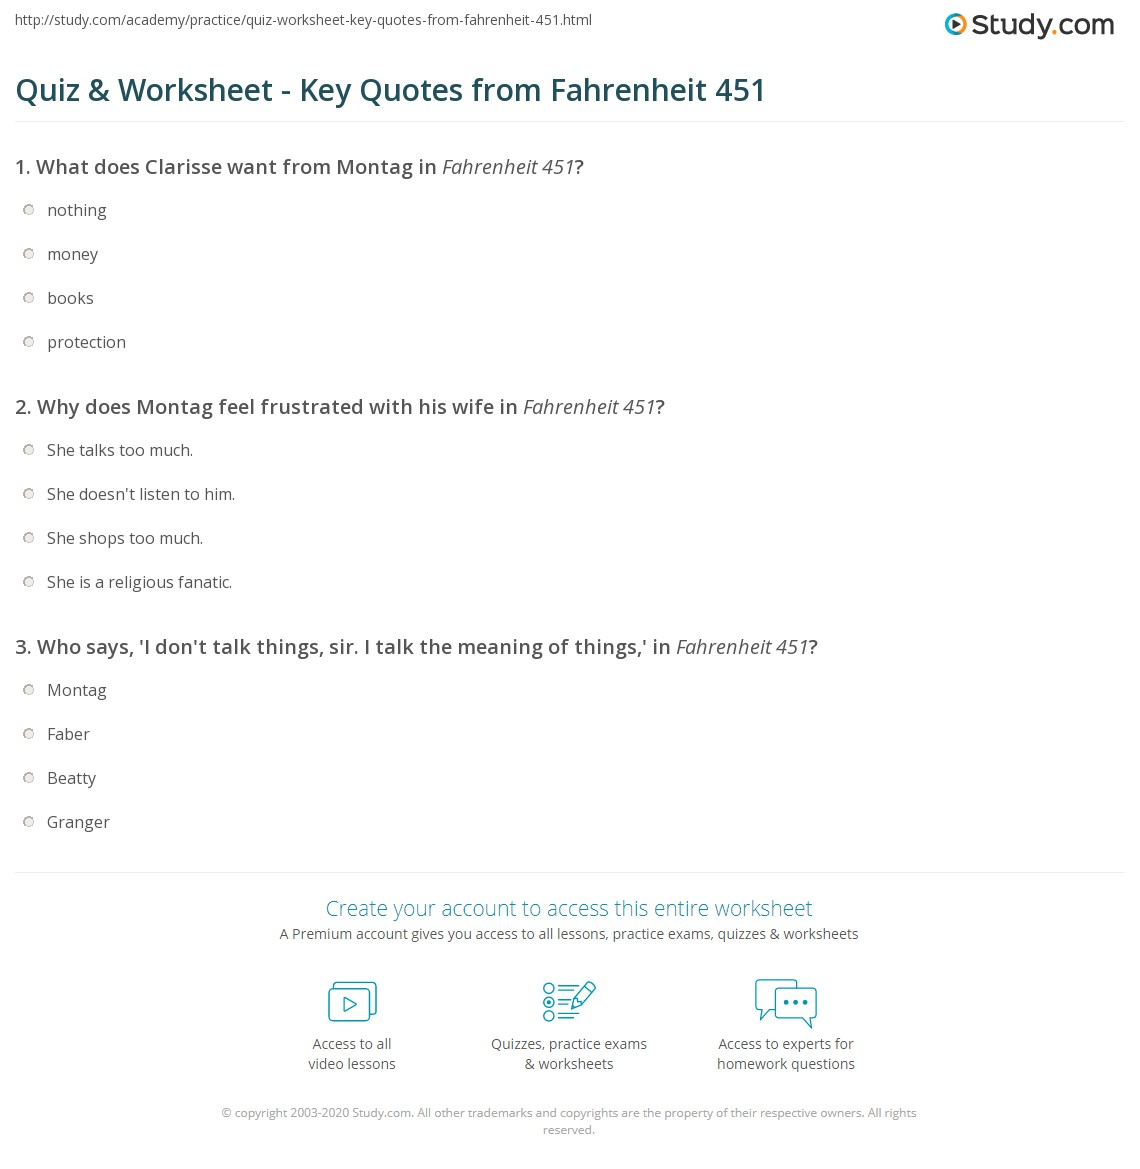 Quotes From Fahrenheit 451 Quiz & Worksheet  Key Quotes From Fahrenheit 451  Study